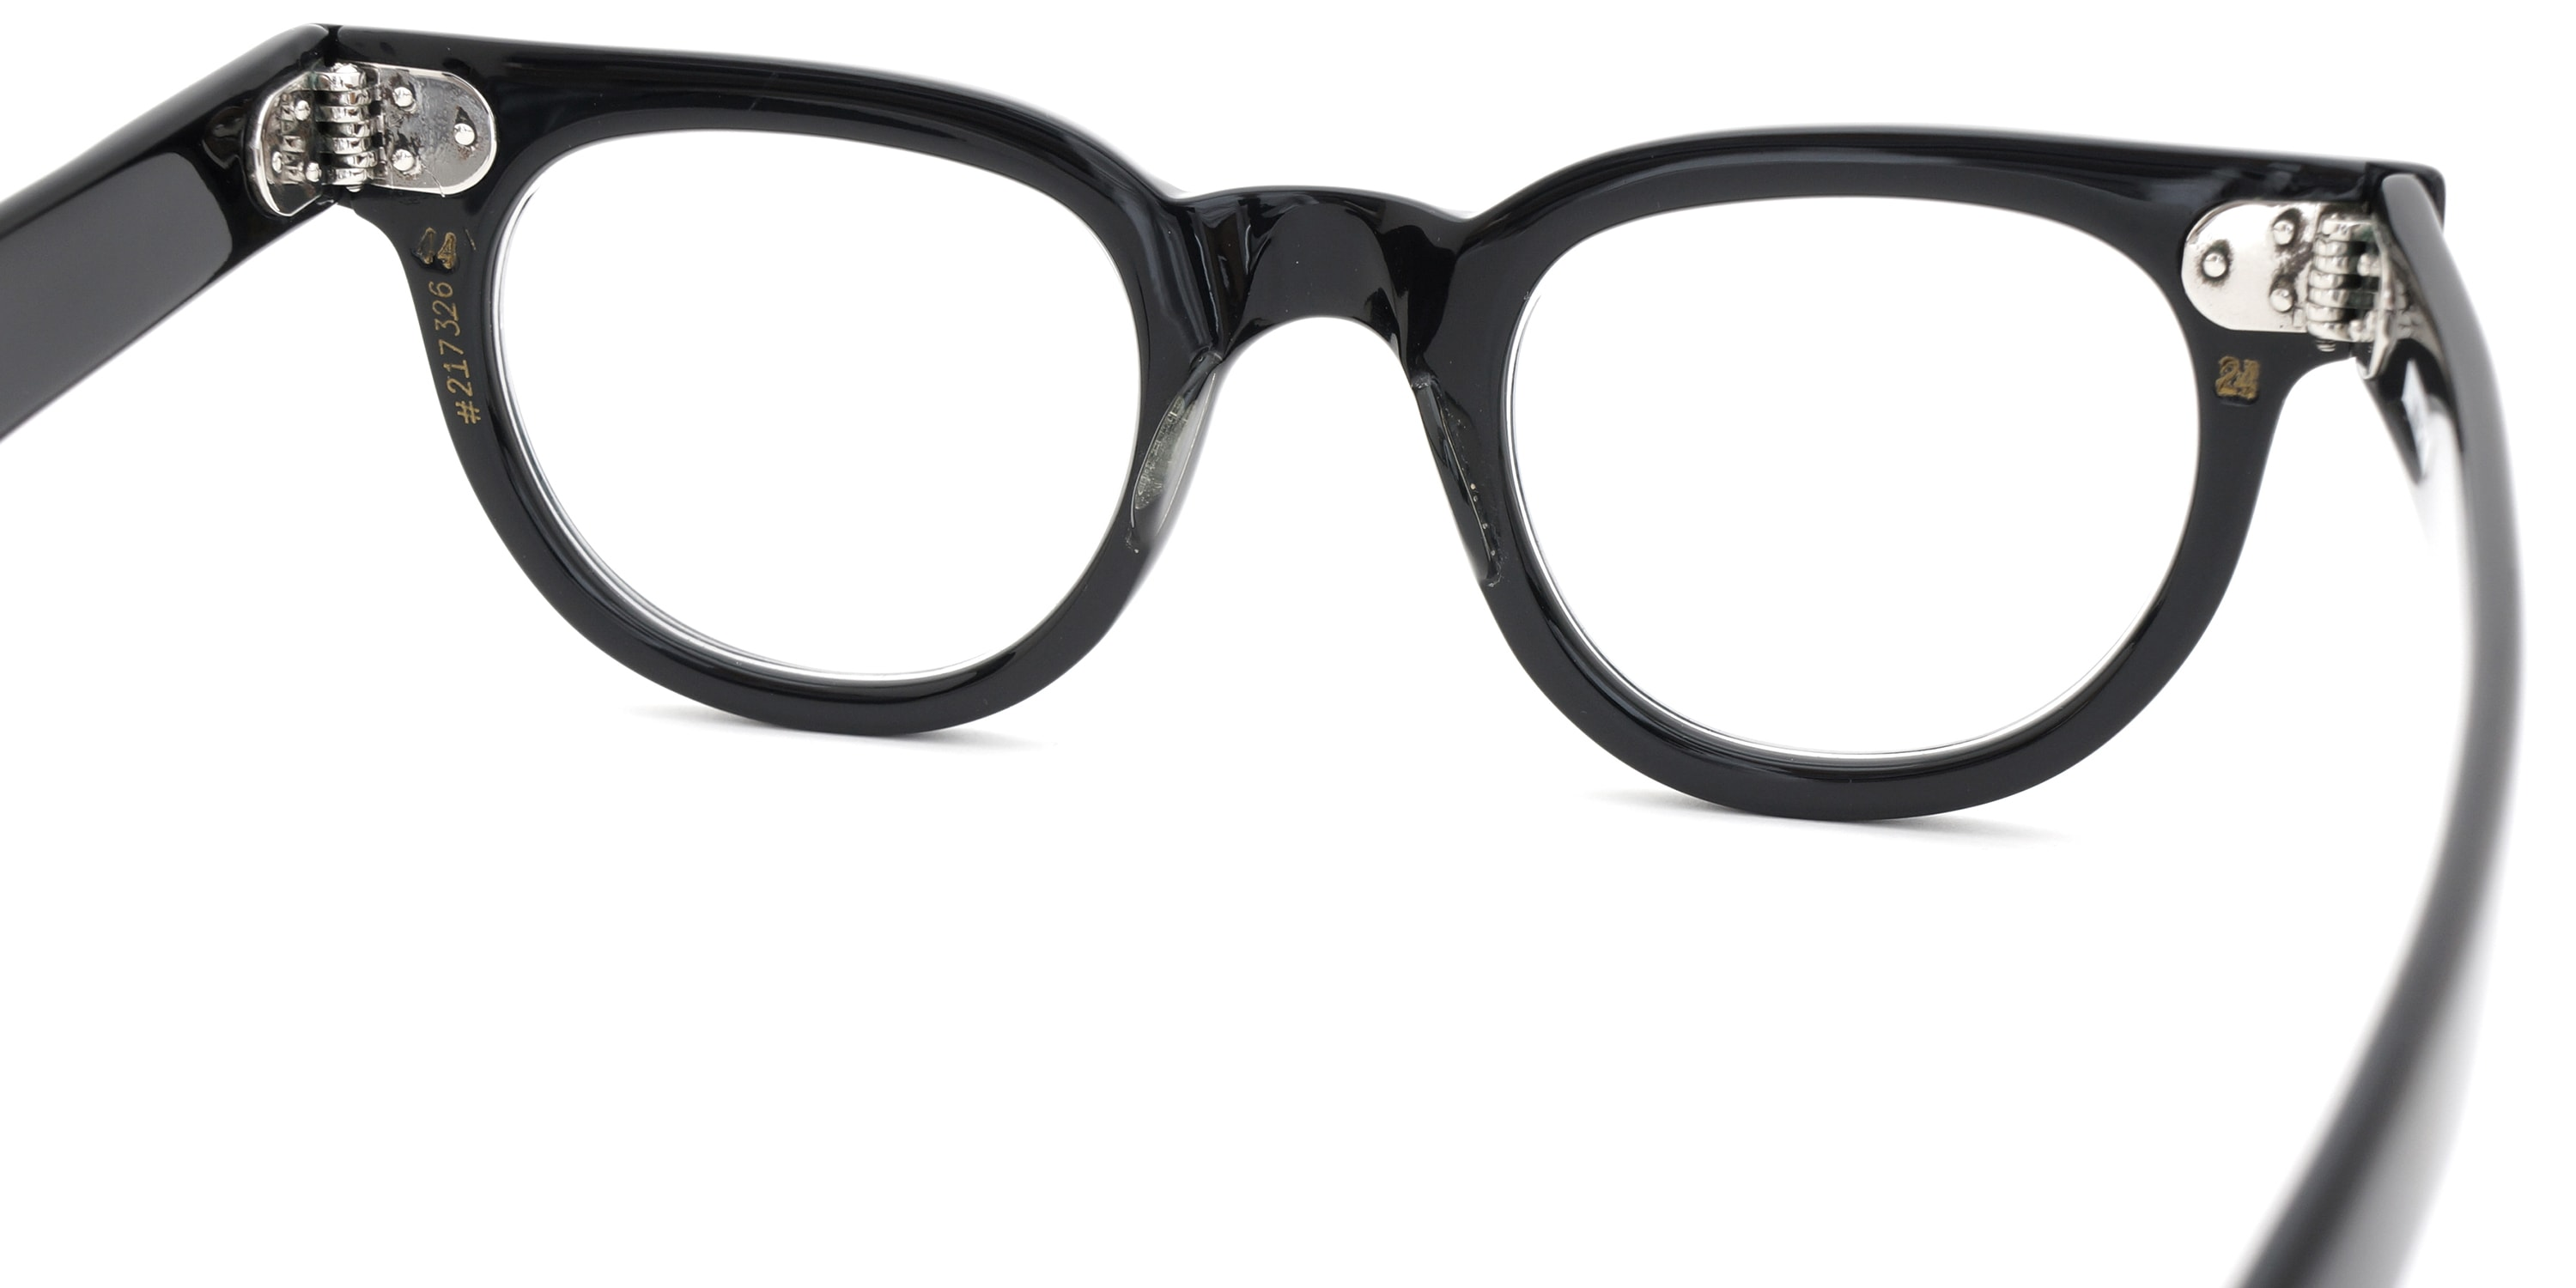 The Spectacle メガネ 1950s-70s TART OPTICAL FDR (FRAME USA) BLACK 44-24 イメージ9